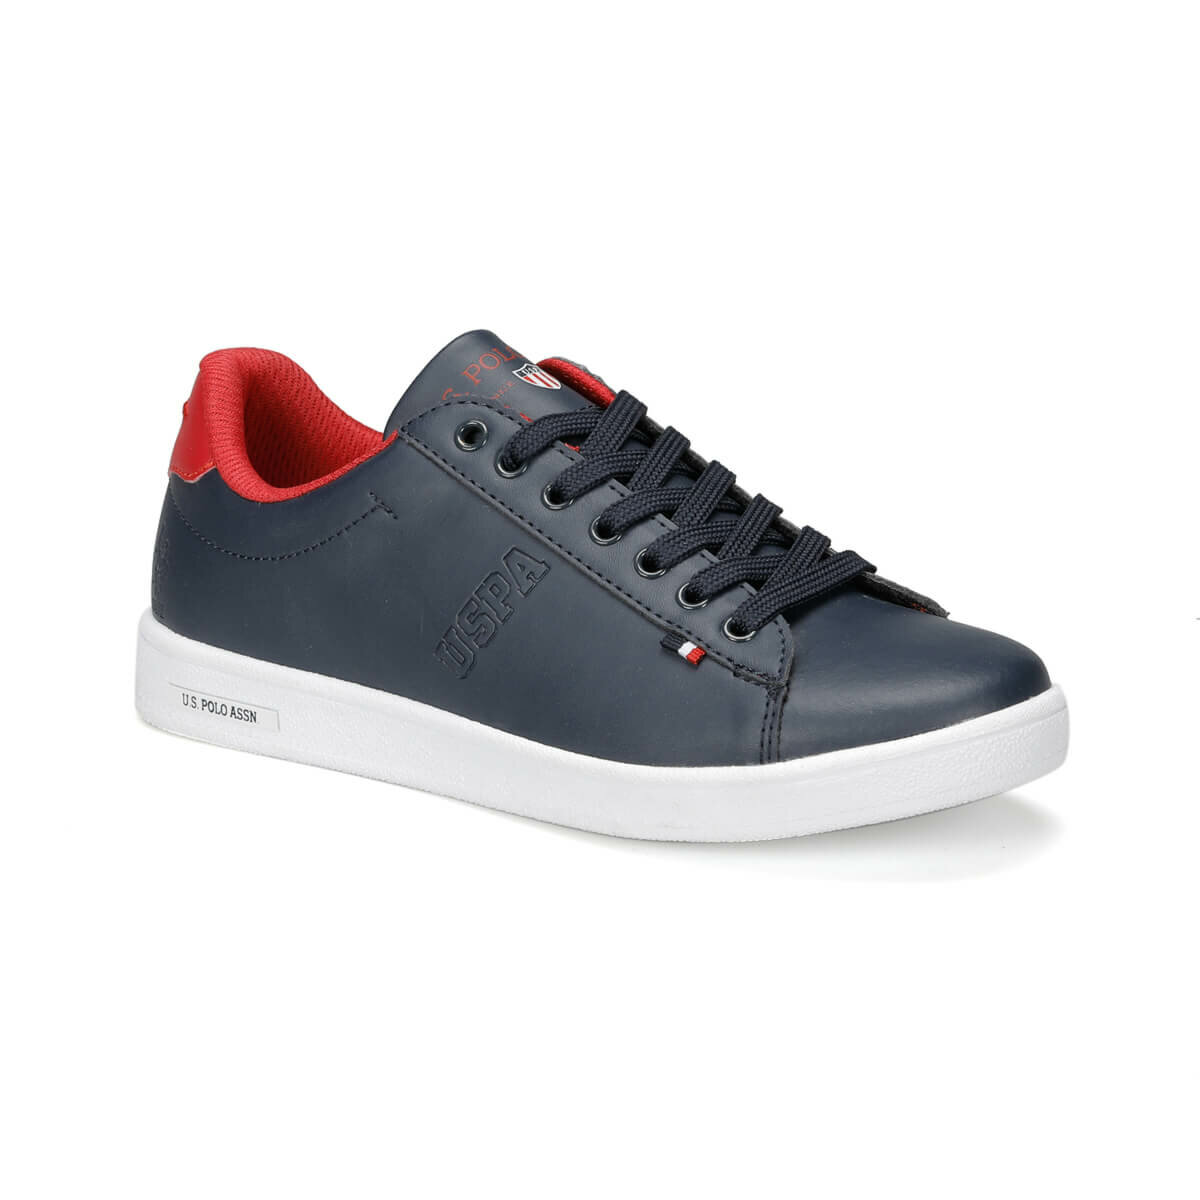 FLO FRANCO 9PR Navy Blue Women 'S Sneaker Shoes U.S. POLO ASSN.